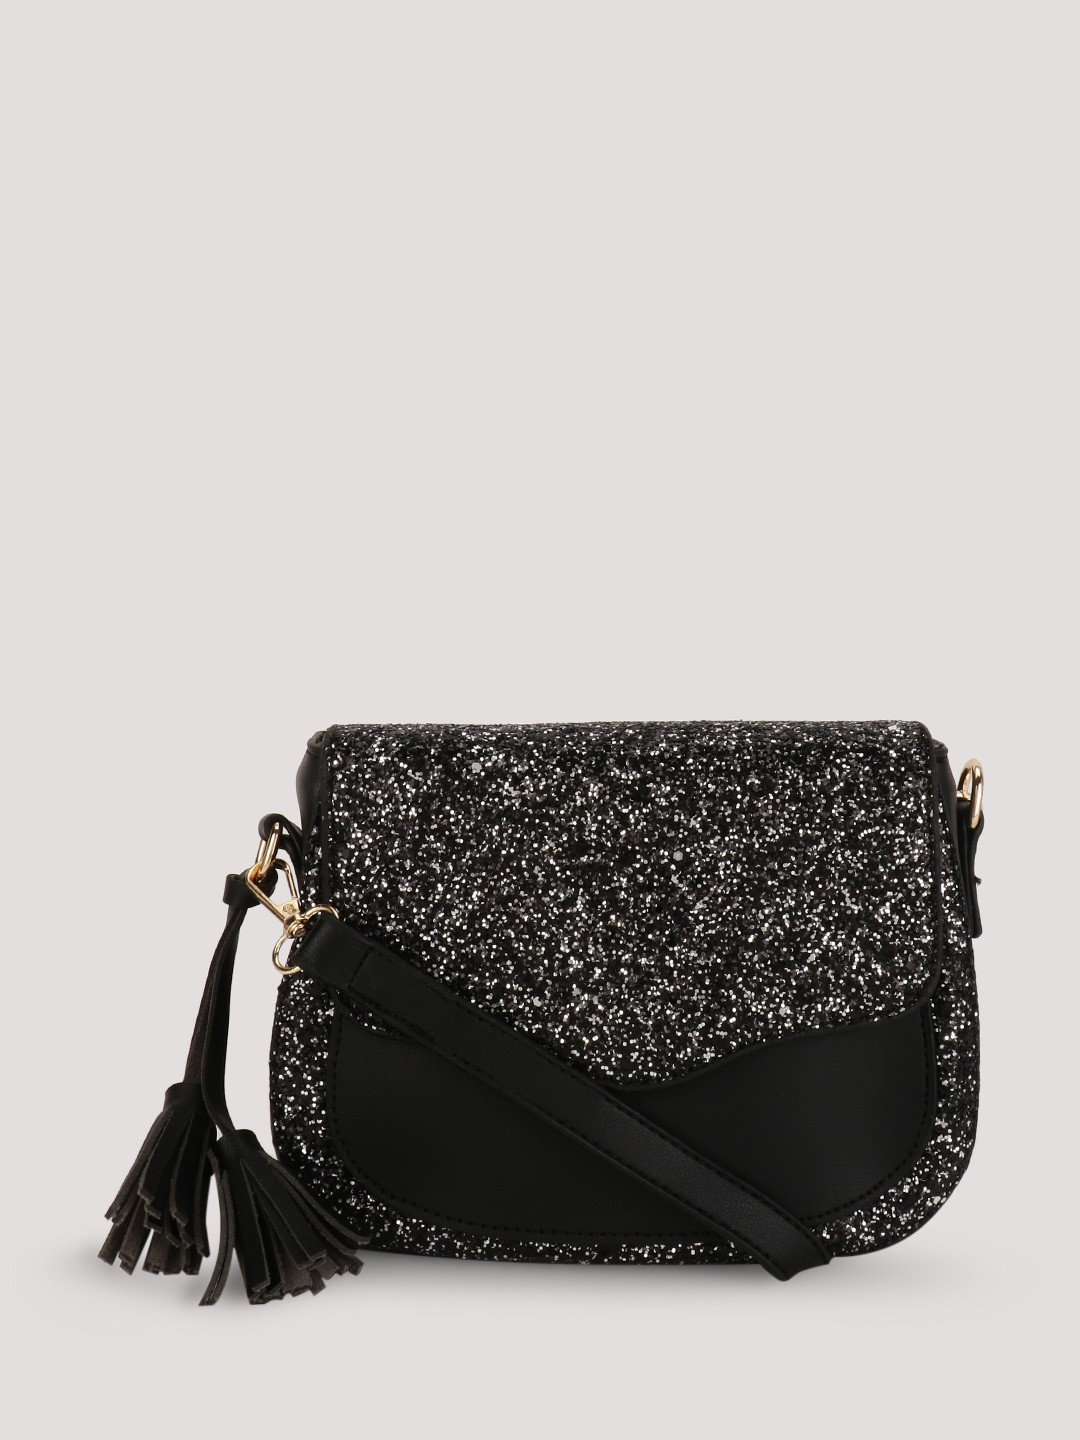 Buy FUR JADEN Glitter Sling Bag For Women - Women's Black Sling ...